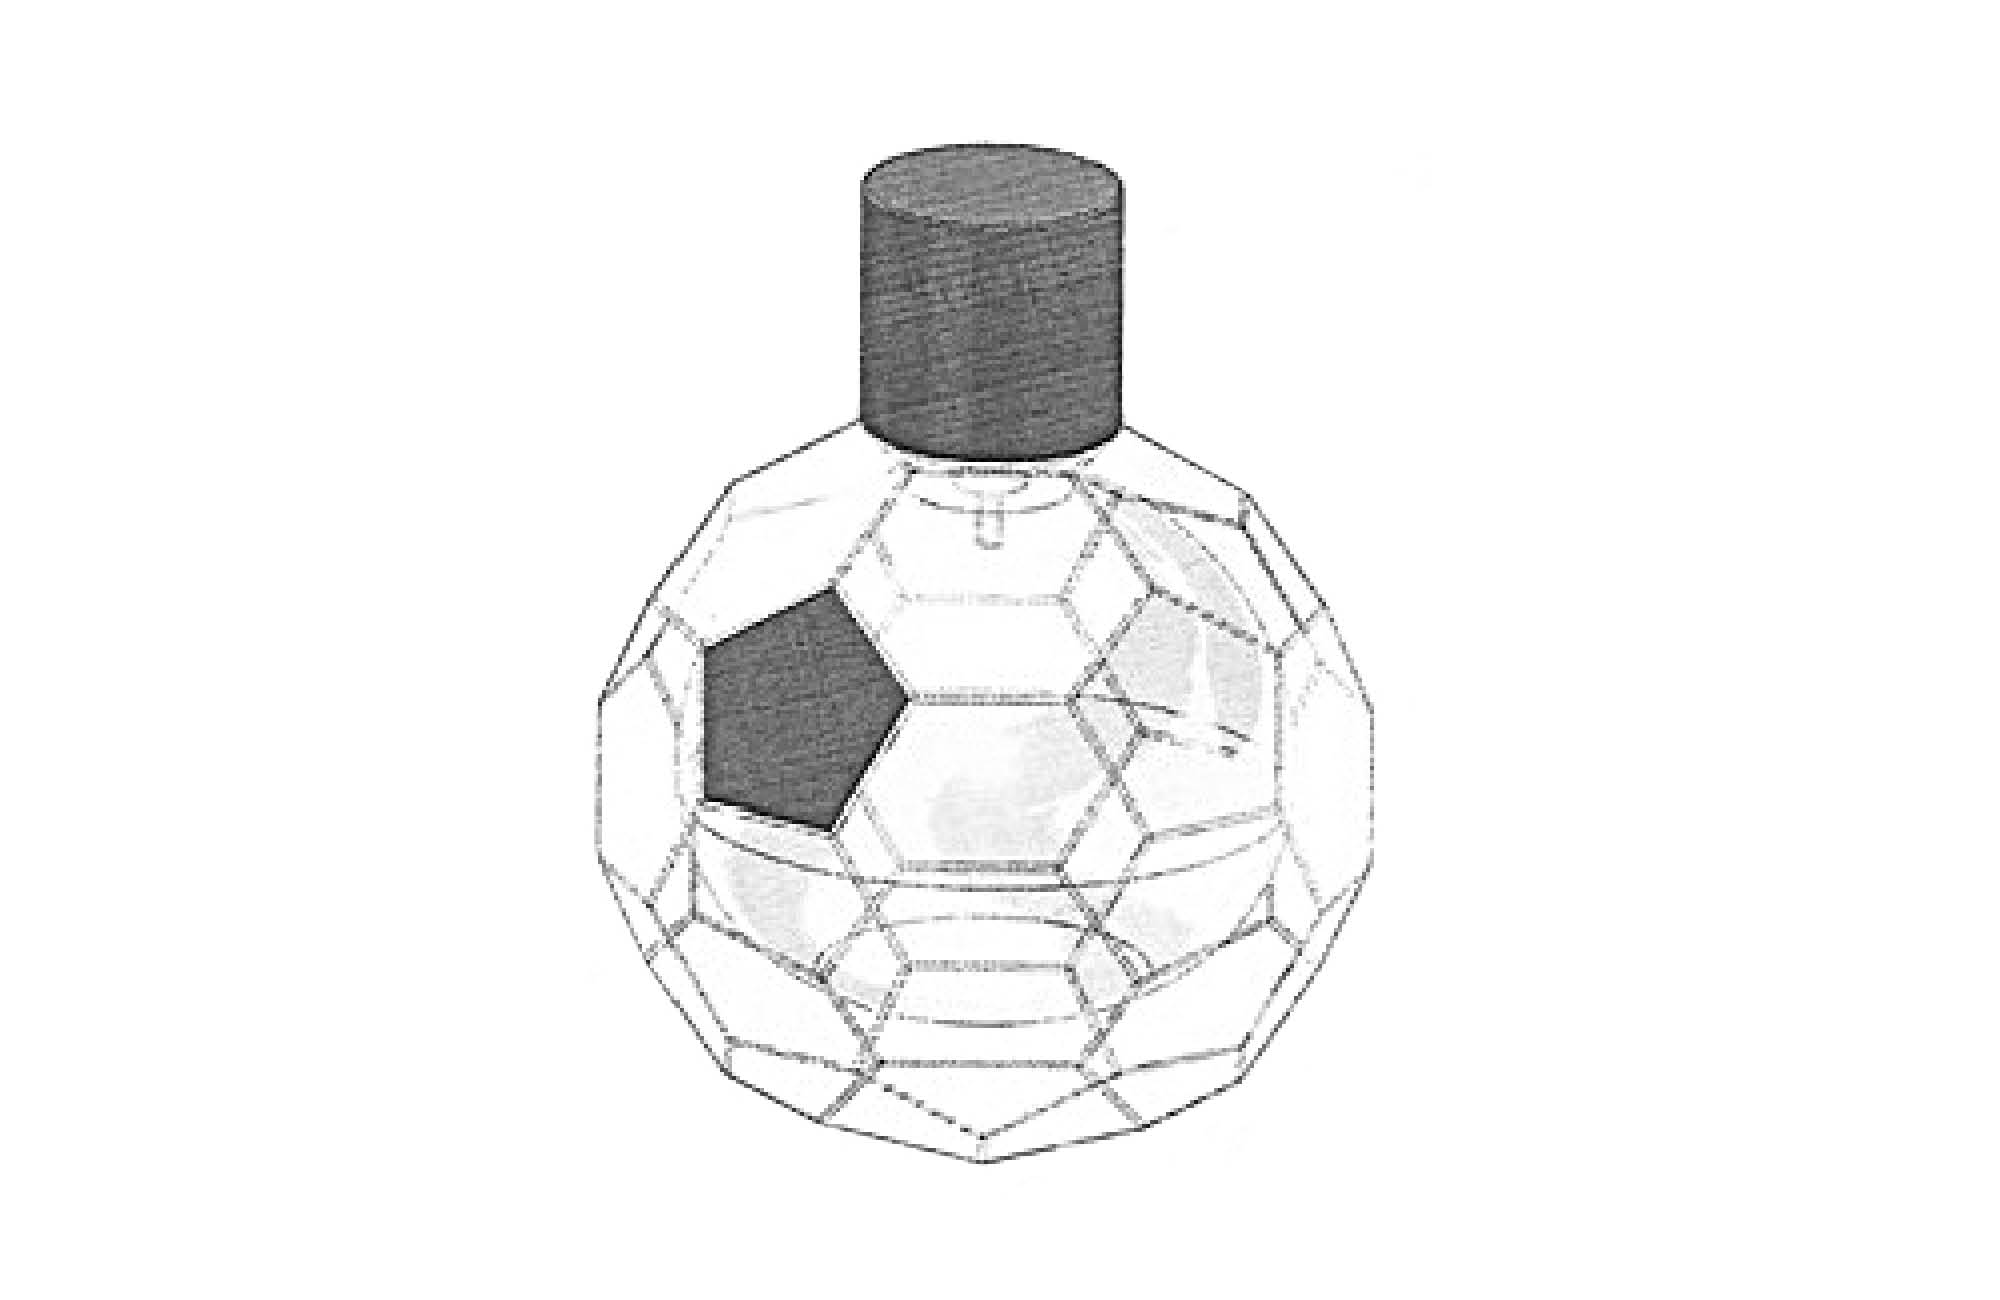 Sketch of a perfume bottle